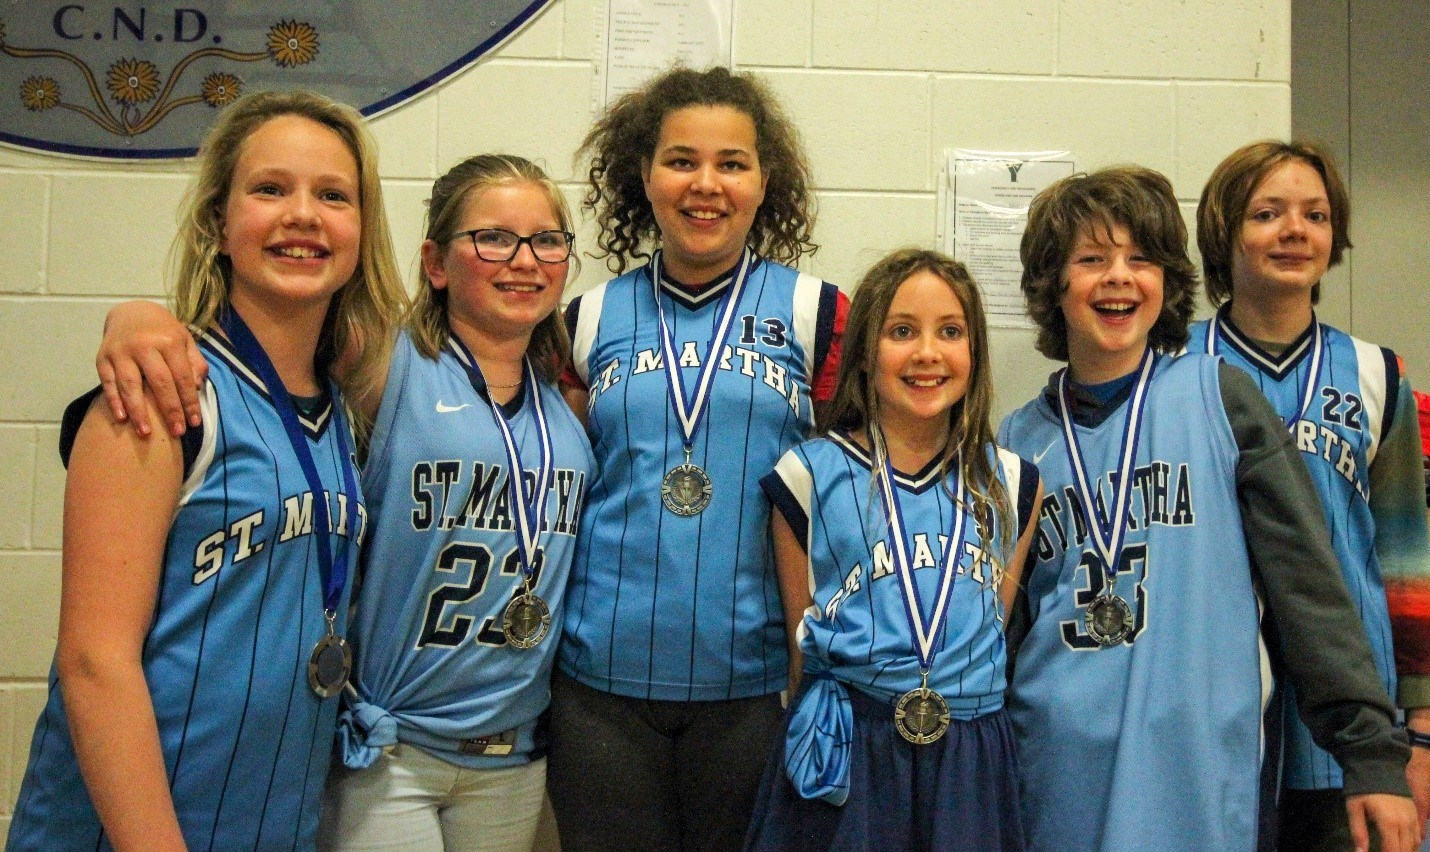 St. Martha Math team